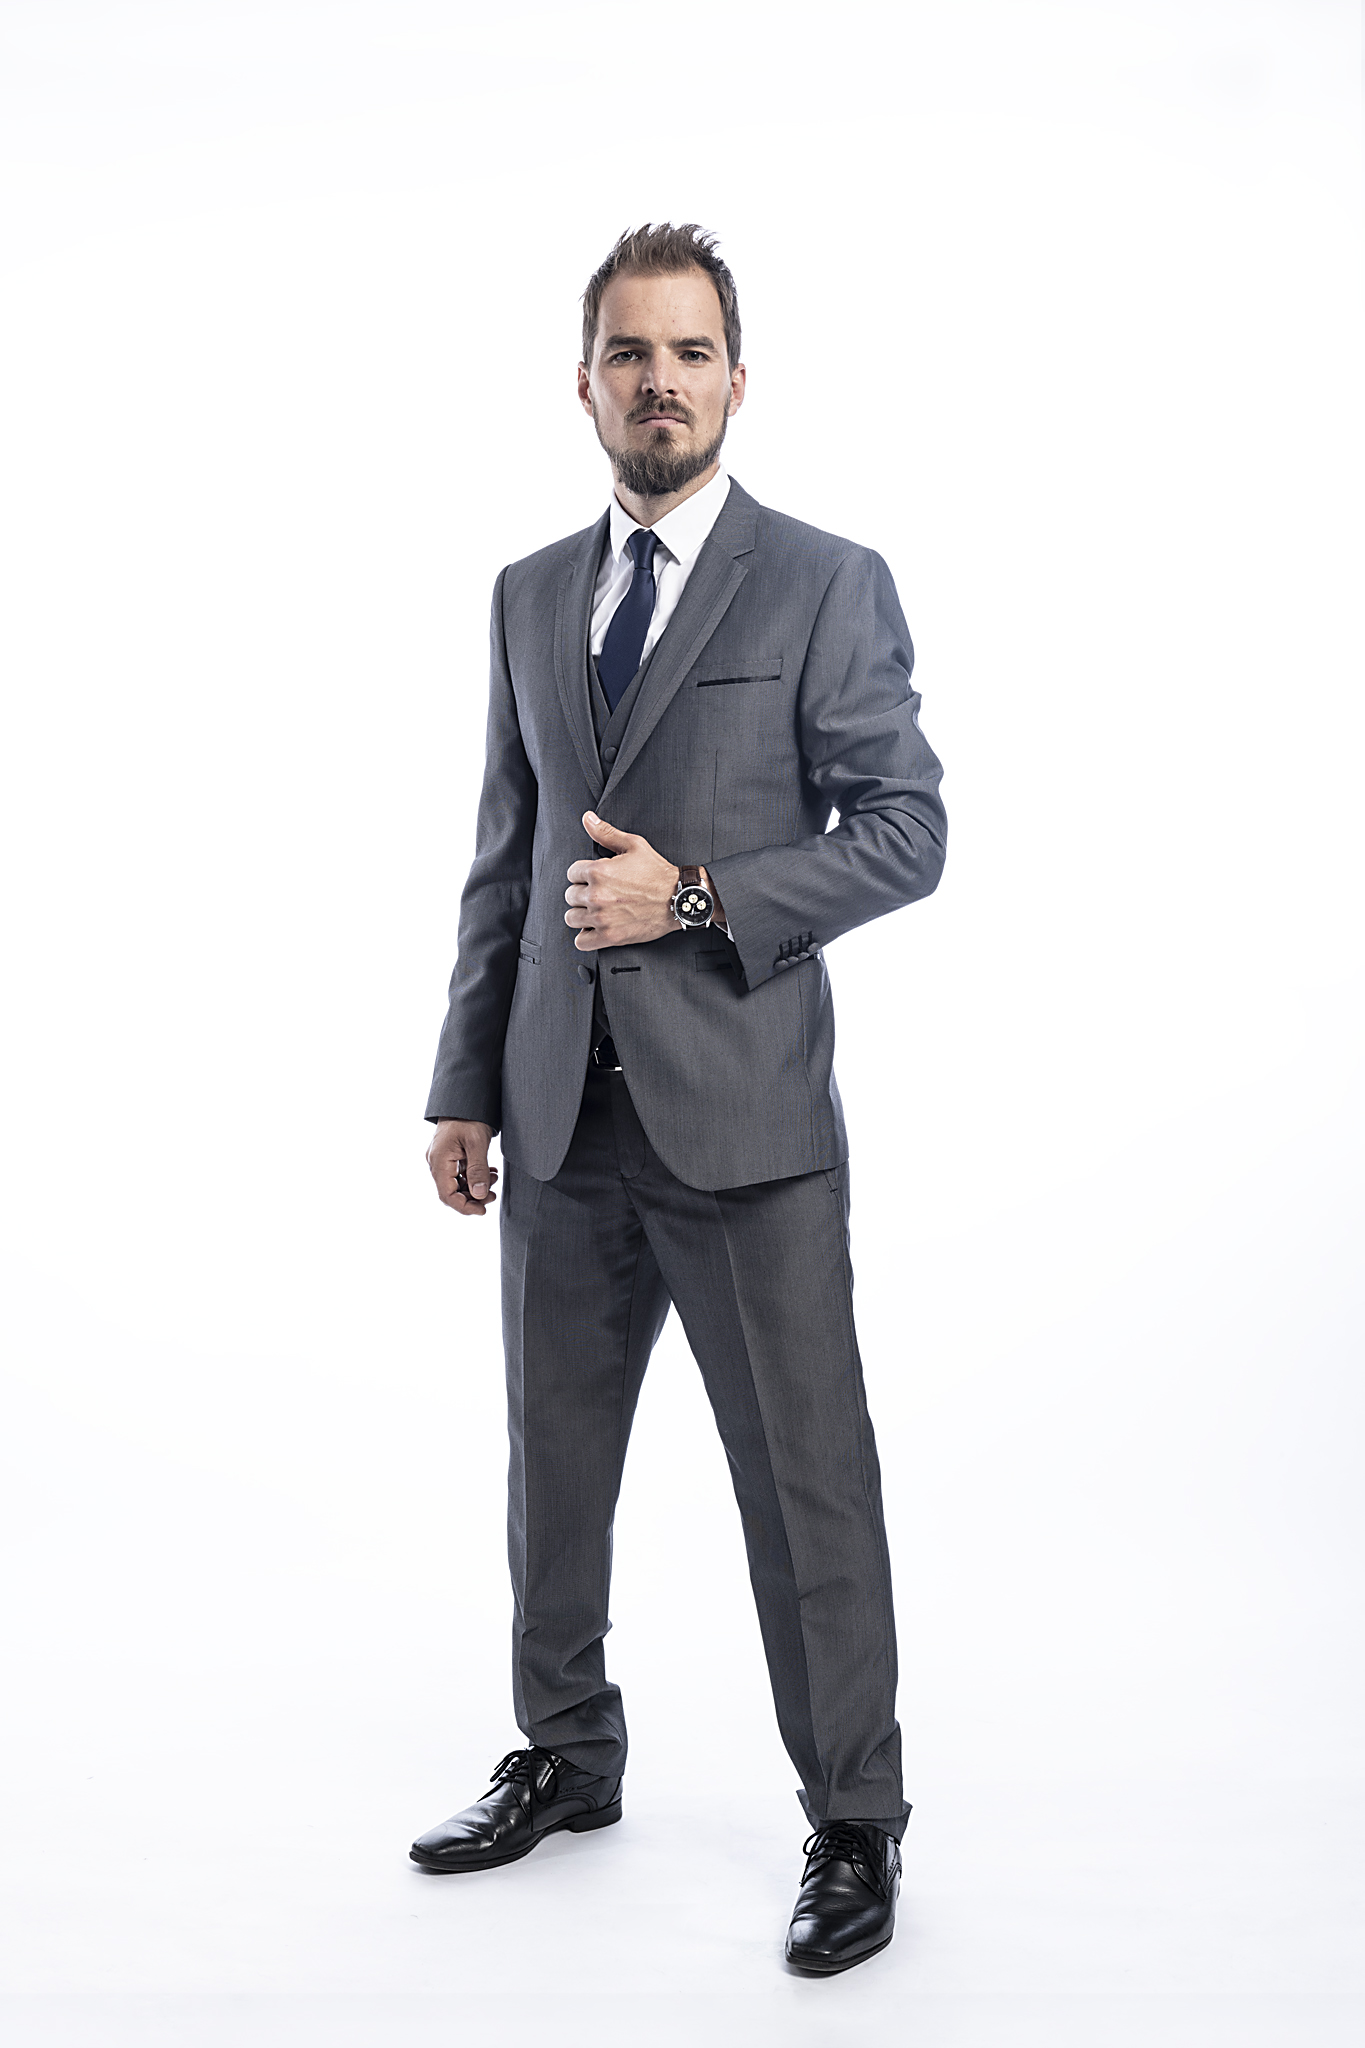 male model with grey suit